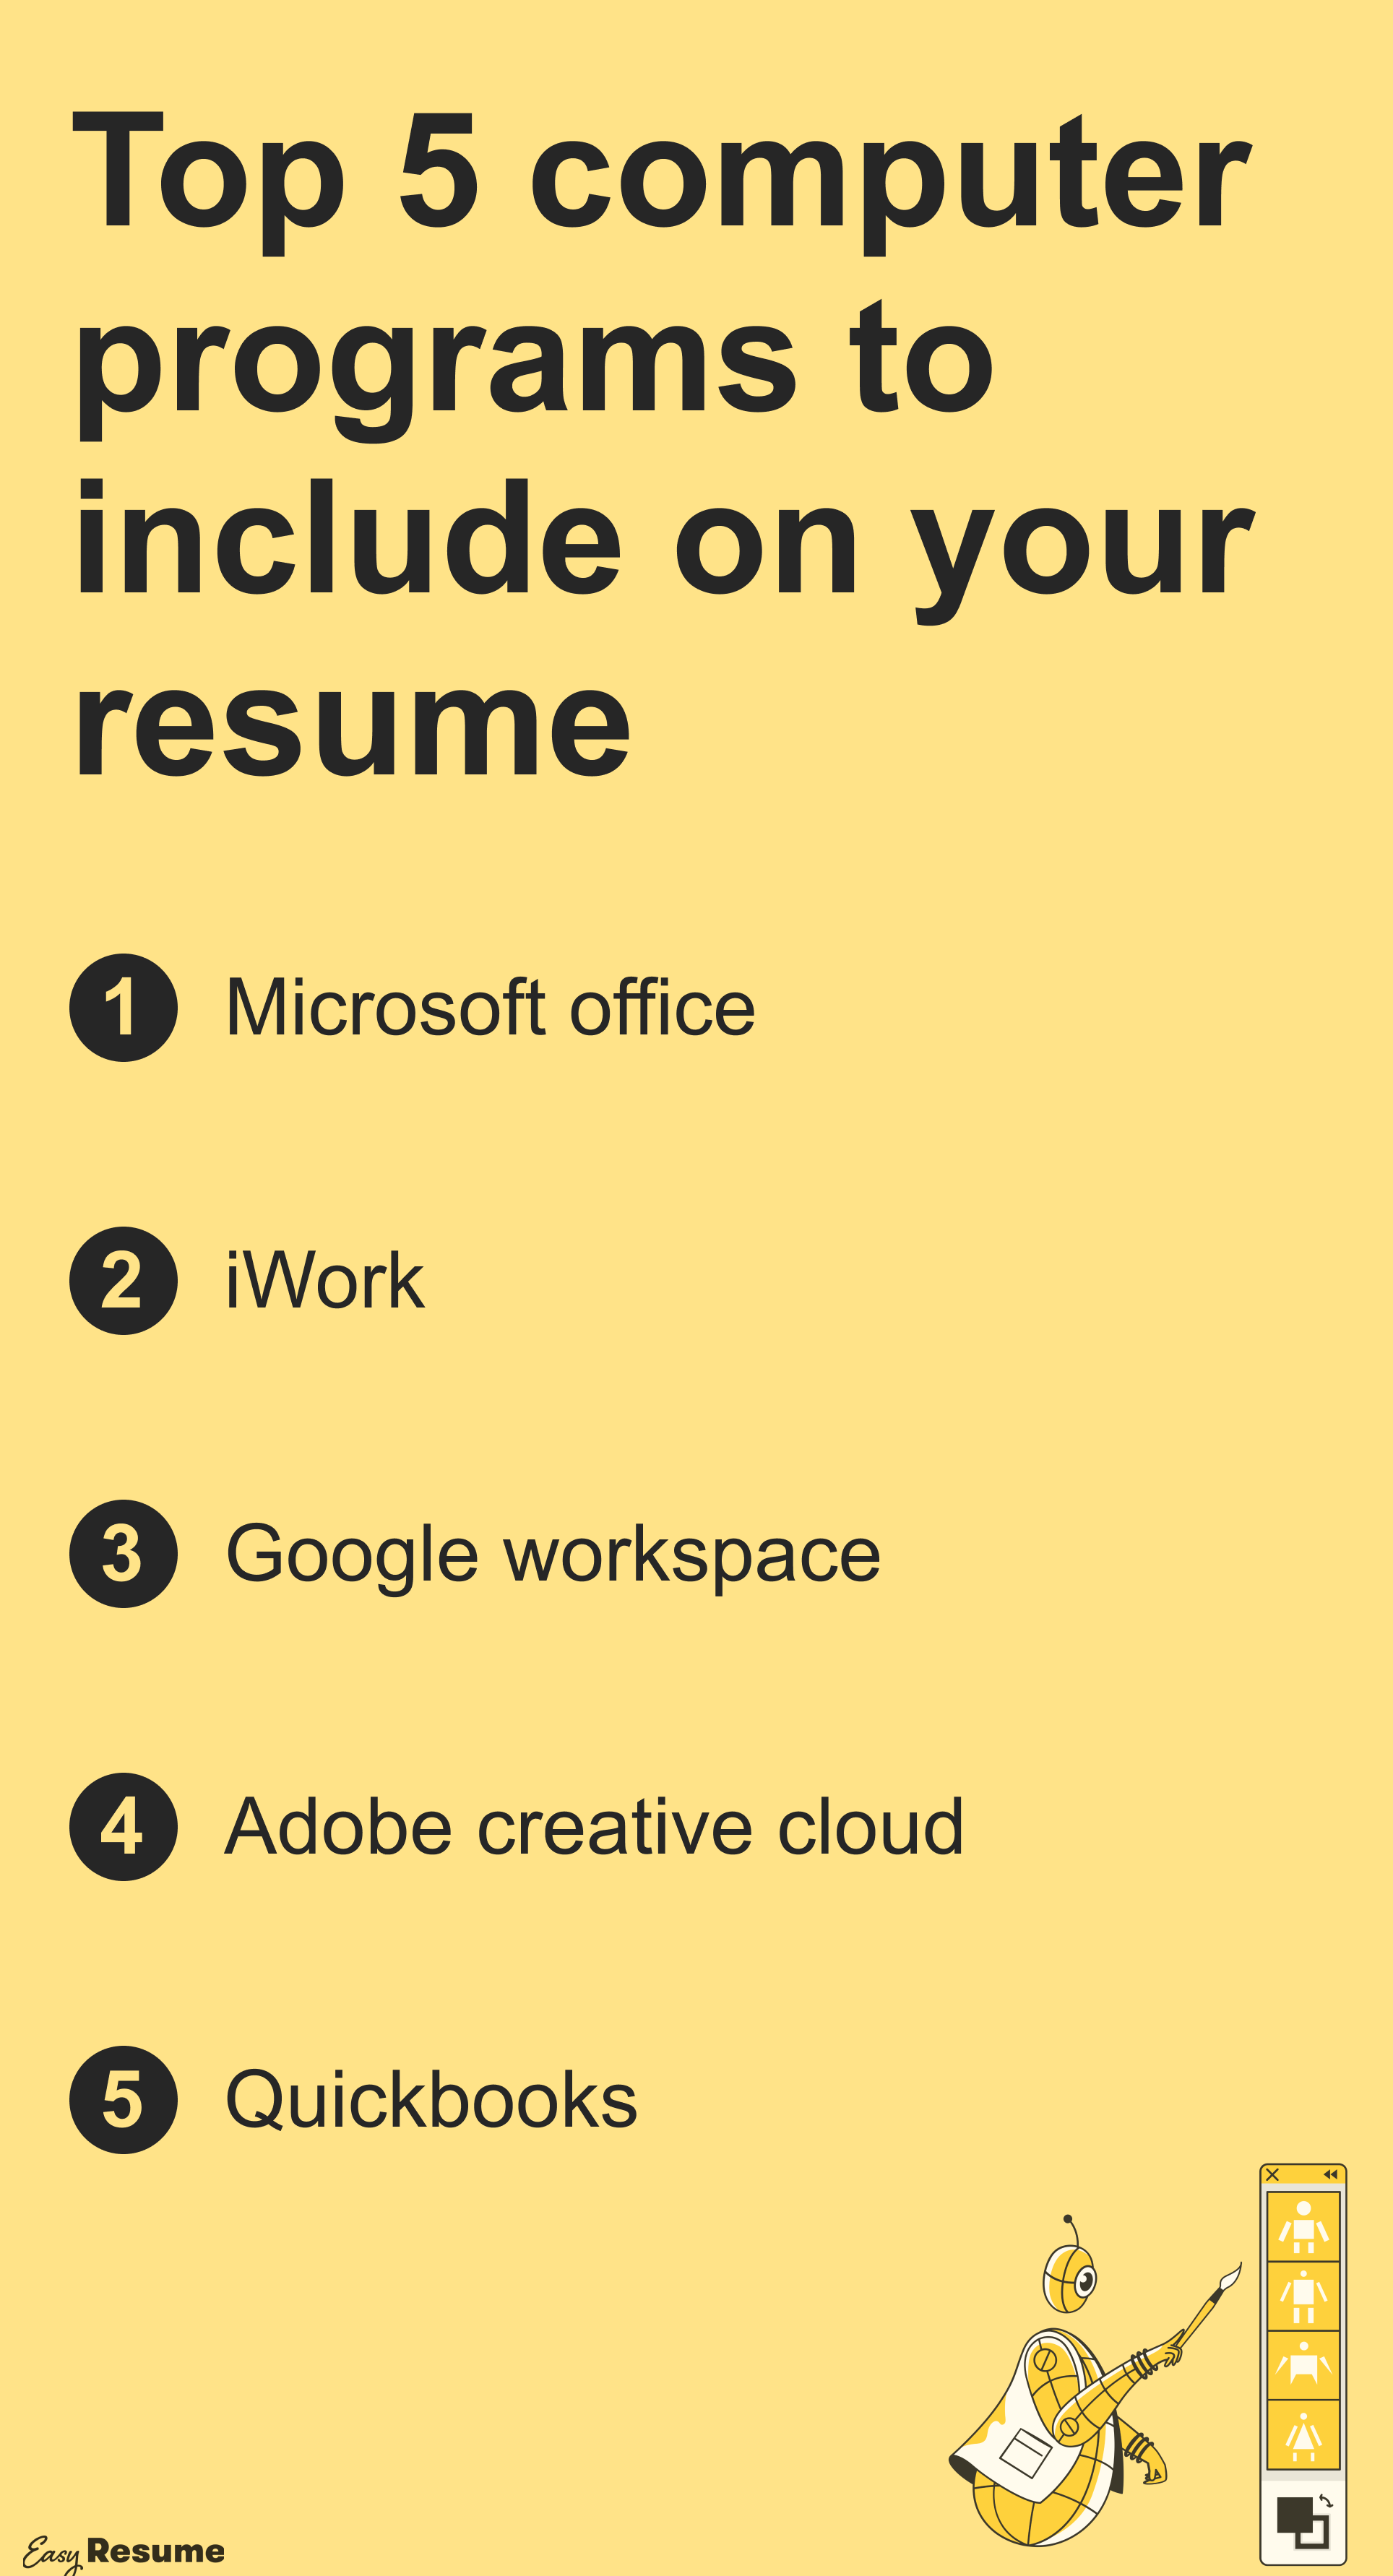 Top 5 computer programs to include on your resume